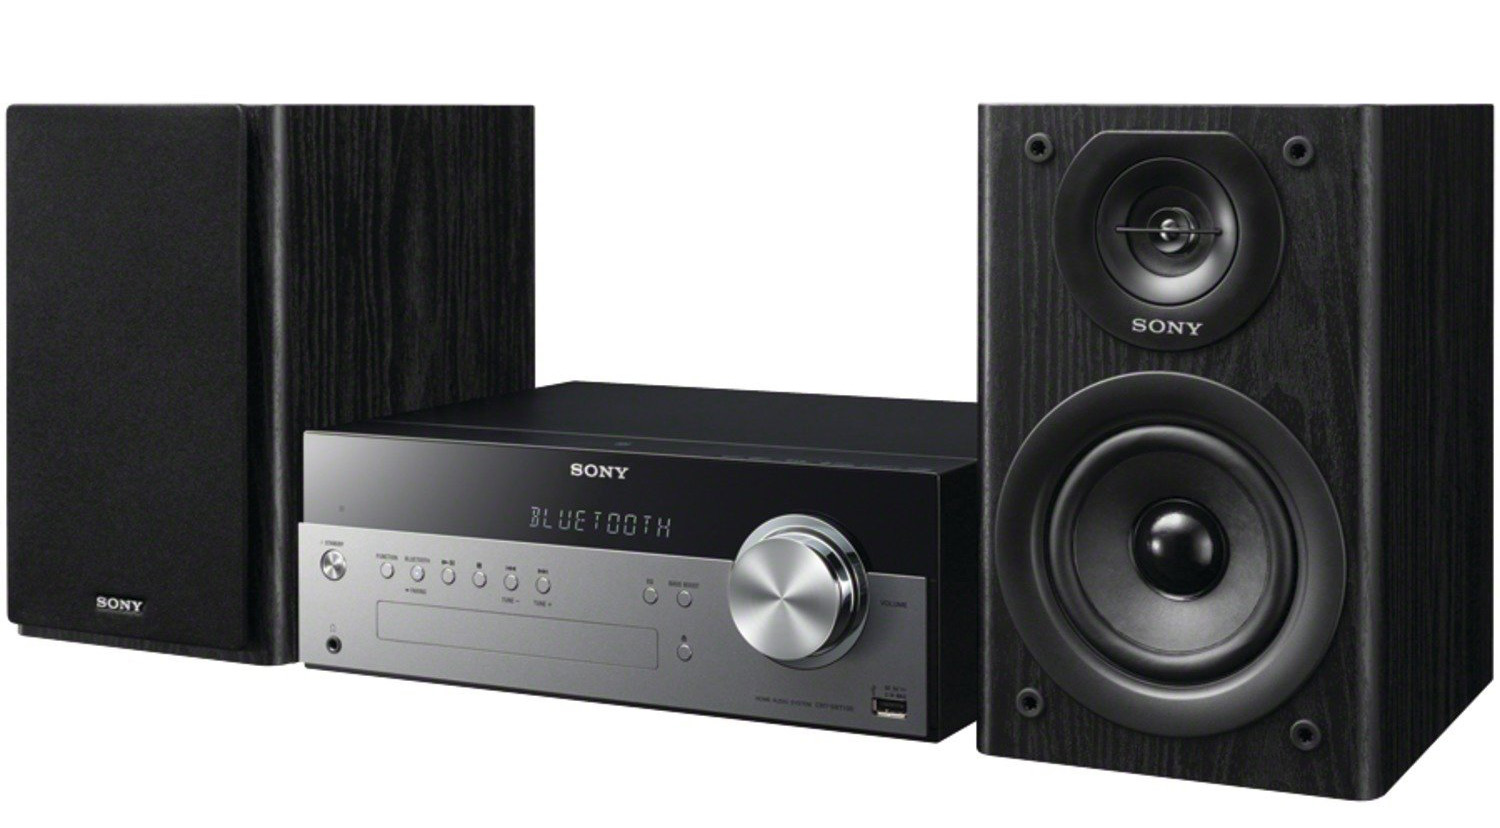 sony home sound system 2017. with sound that is more than enough to fill an average-sized room, sony cmtsbt100 also widely praised for its good audio quality relative compact home system 2017 e